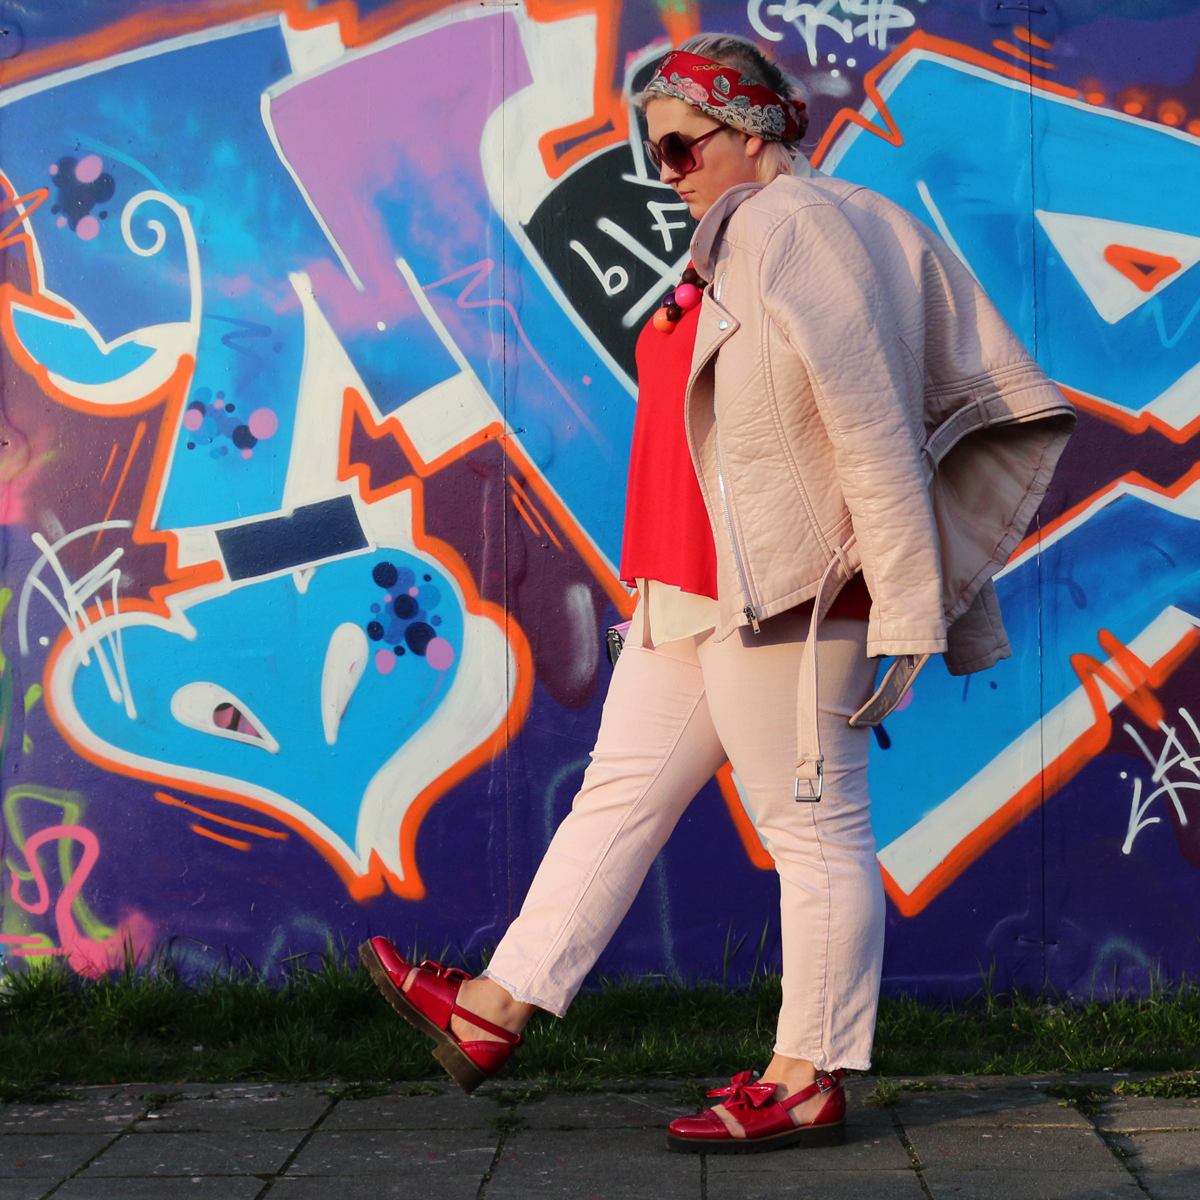 And-god-created-elvis-plus-size-blogger-blog-mode-candy-pink-red-outfit-curvy-french-curves-9